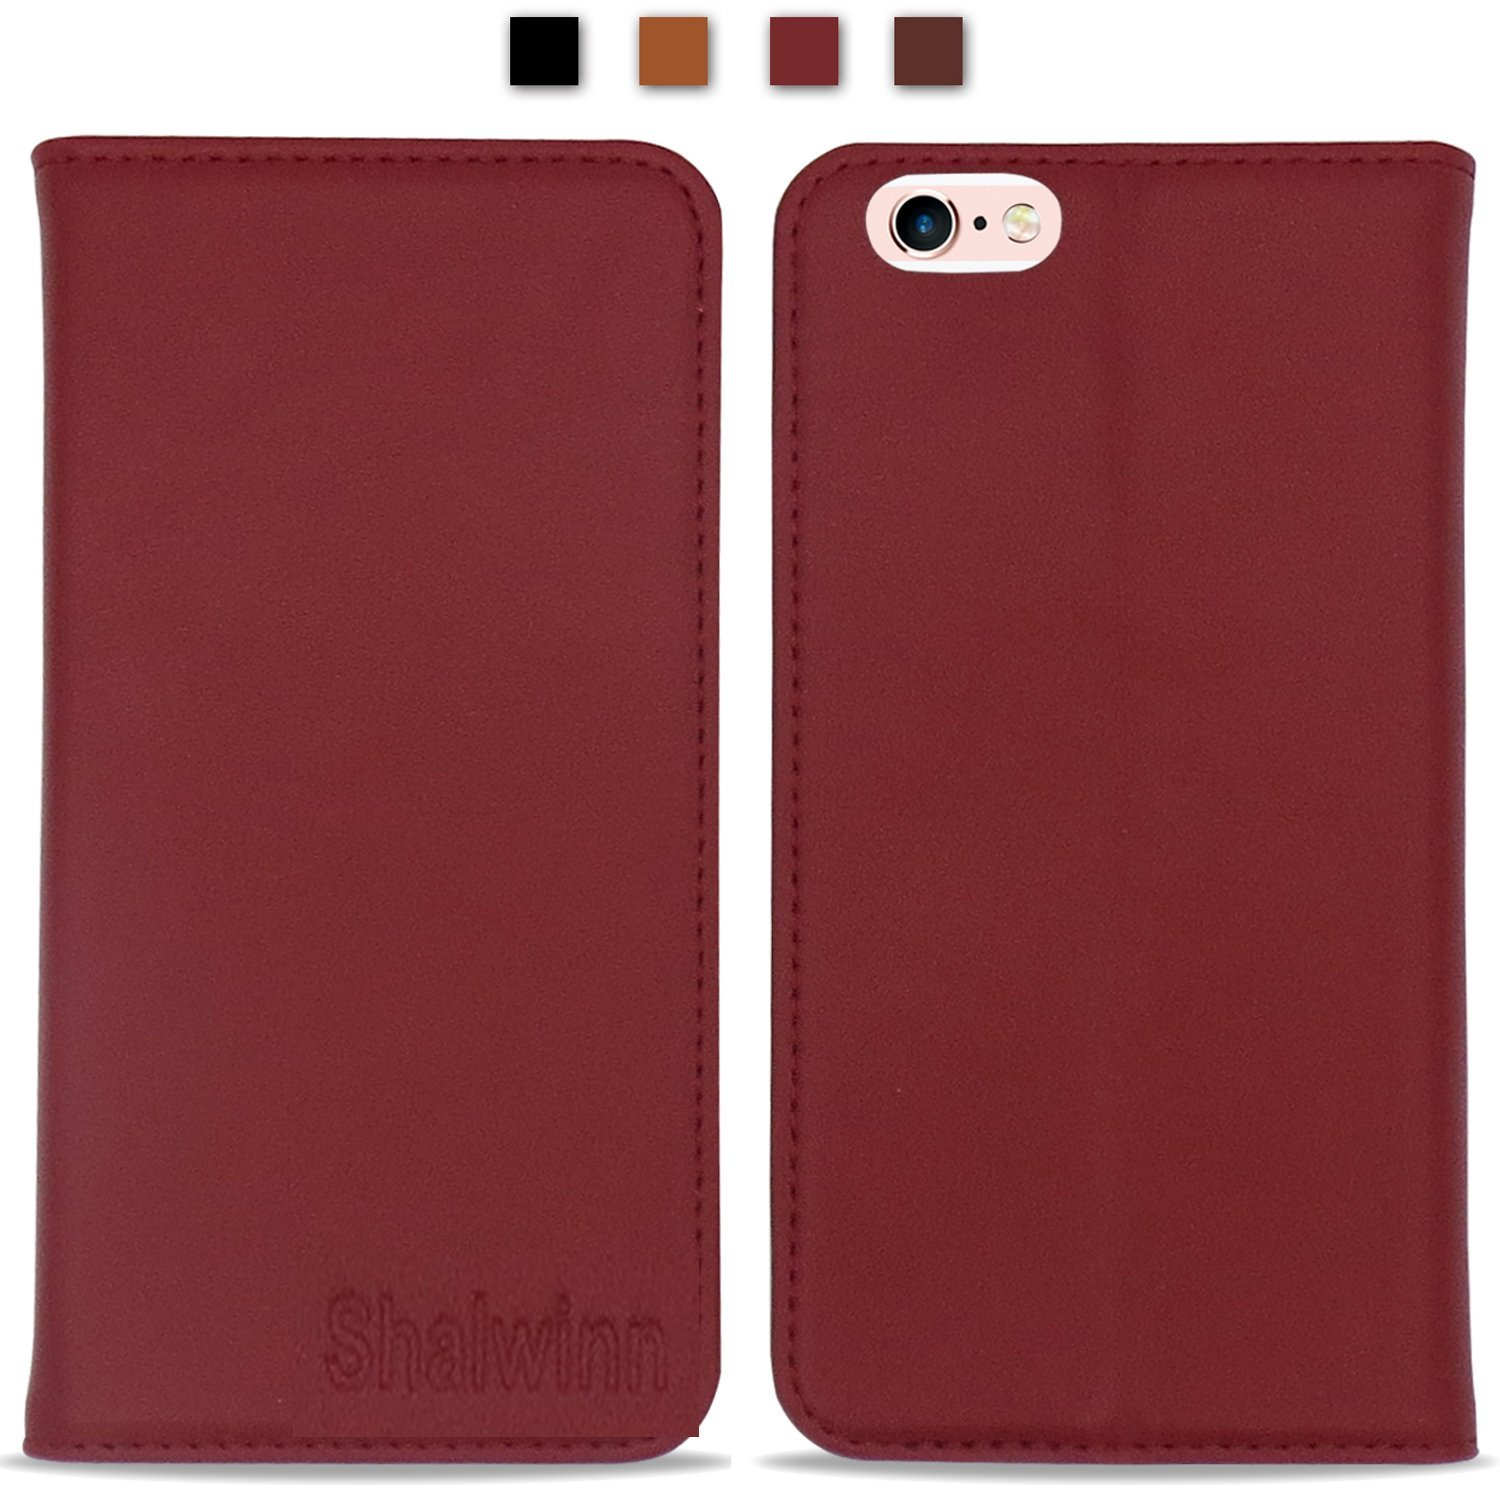 iPhone 6 Case iPhone 6S Case, Shalwinn Genuine Leather Wallet Case, Classic Folio Case with Stand and Card Slots, Magnetic Closure for iPhone 6 and iPhone 6S, (Red)